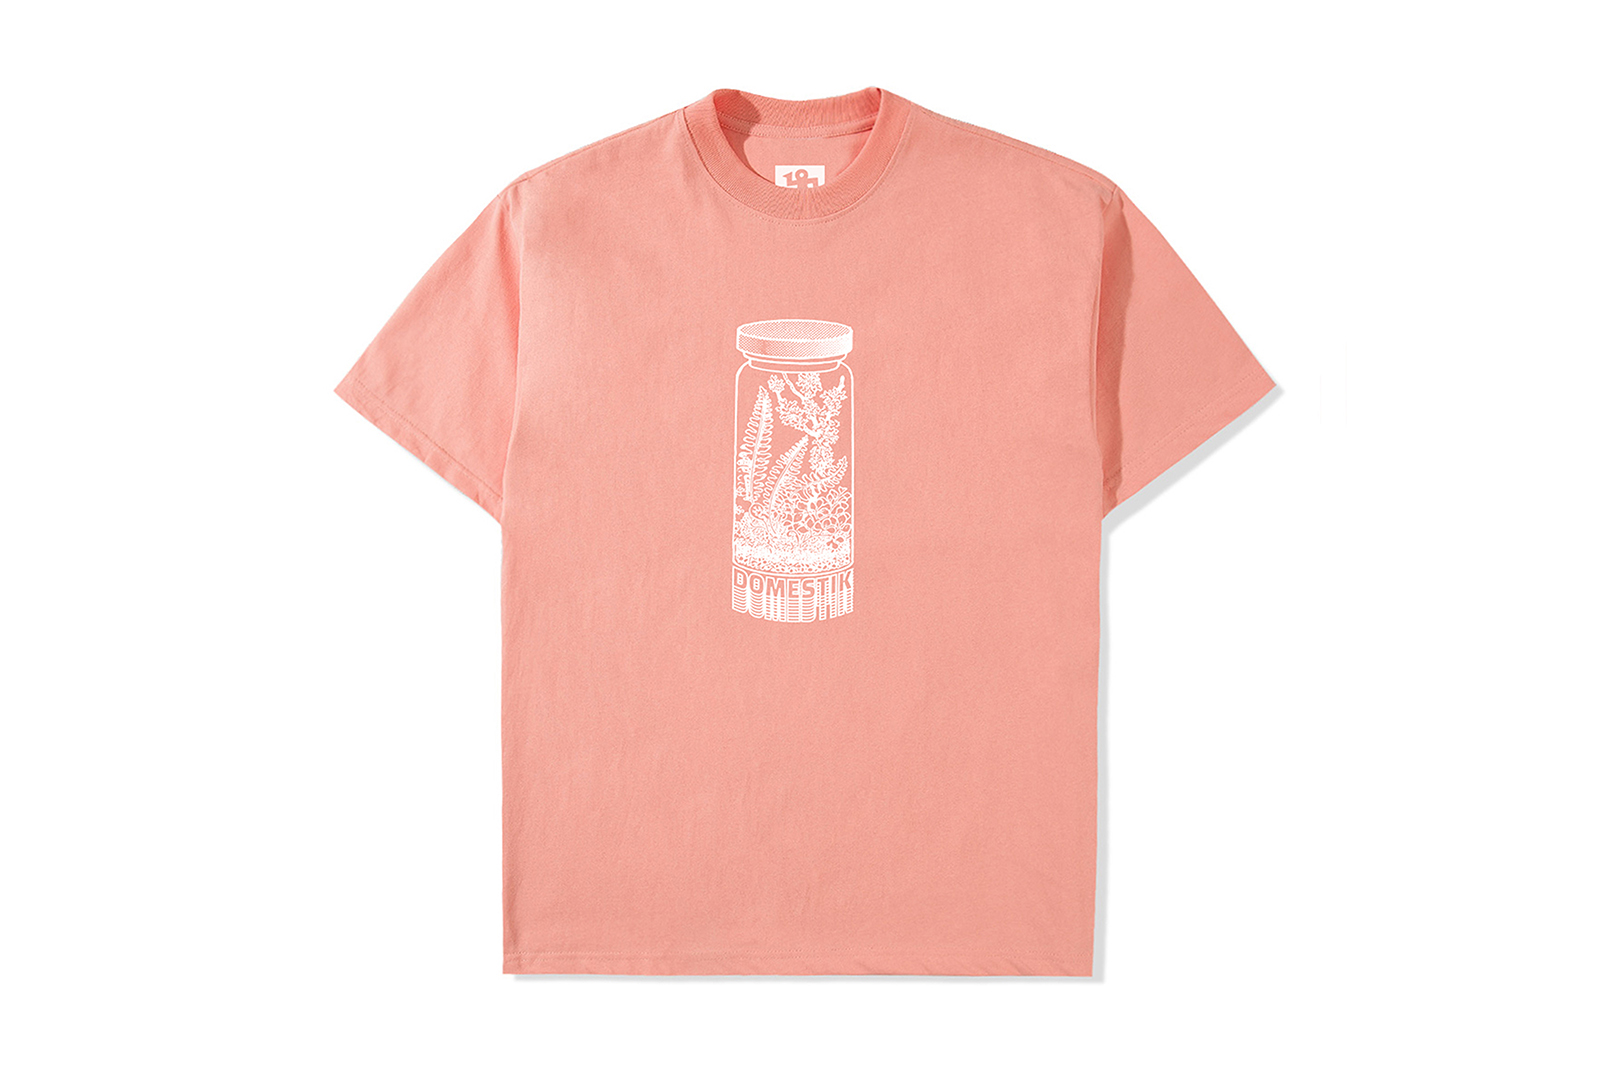 pace-of-nature-tee-pink_p2